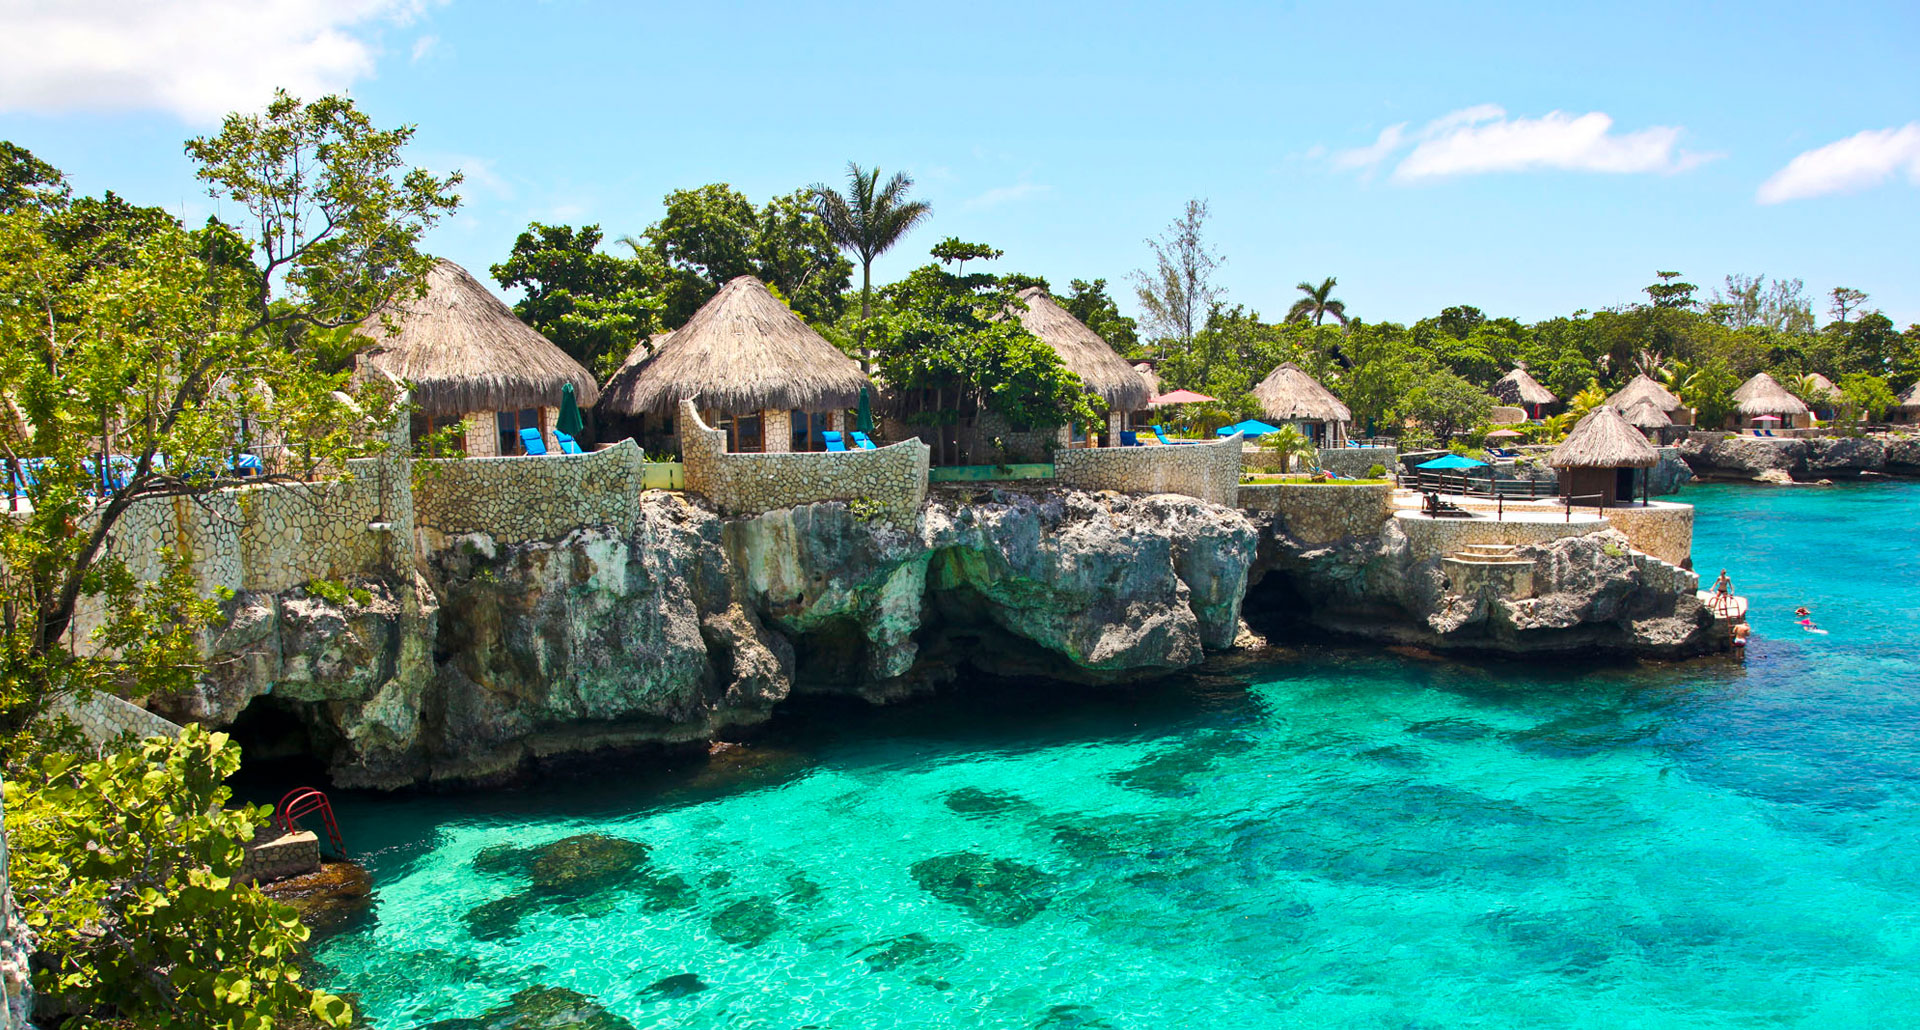 Rockhouse Hotel - boutique hotel in Negril